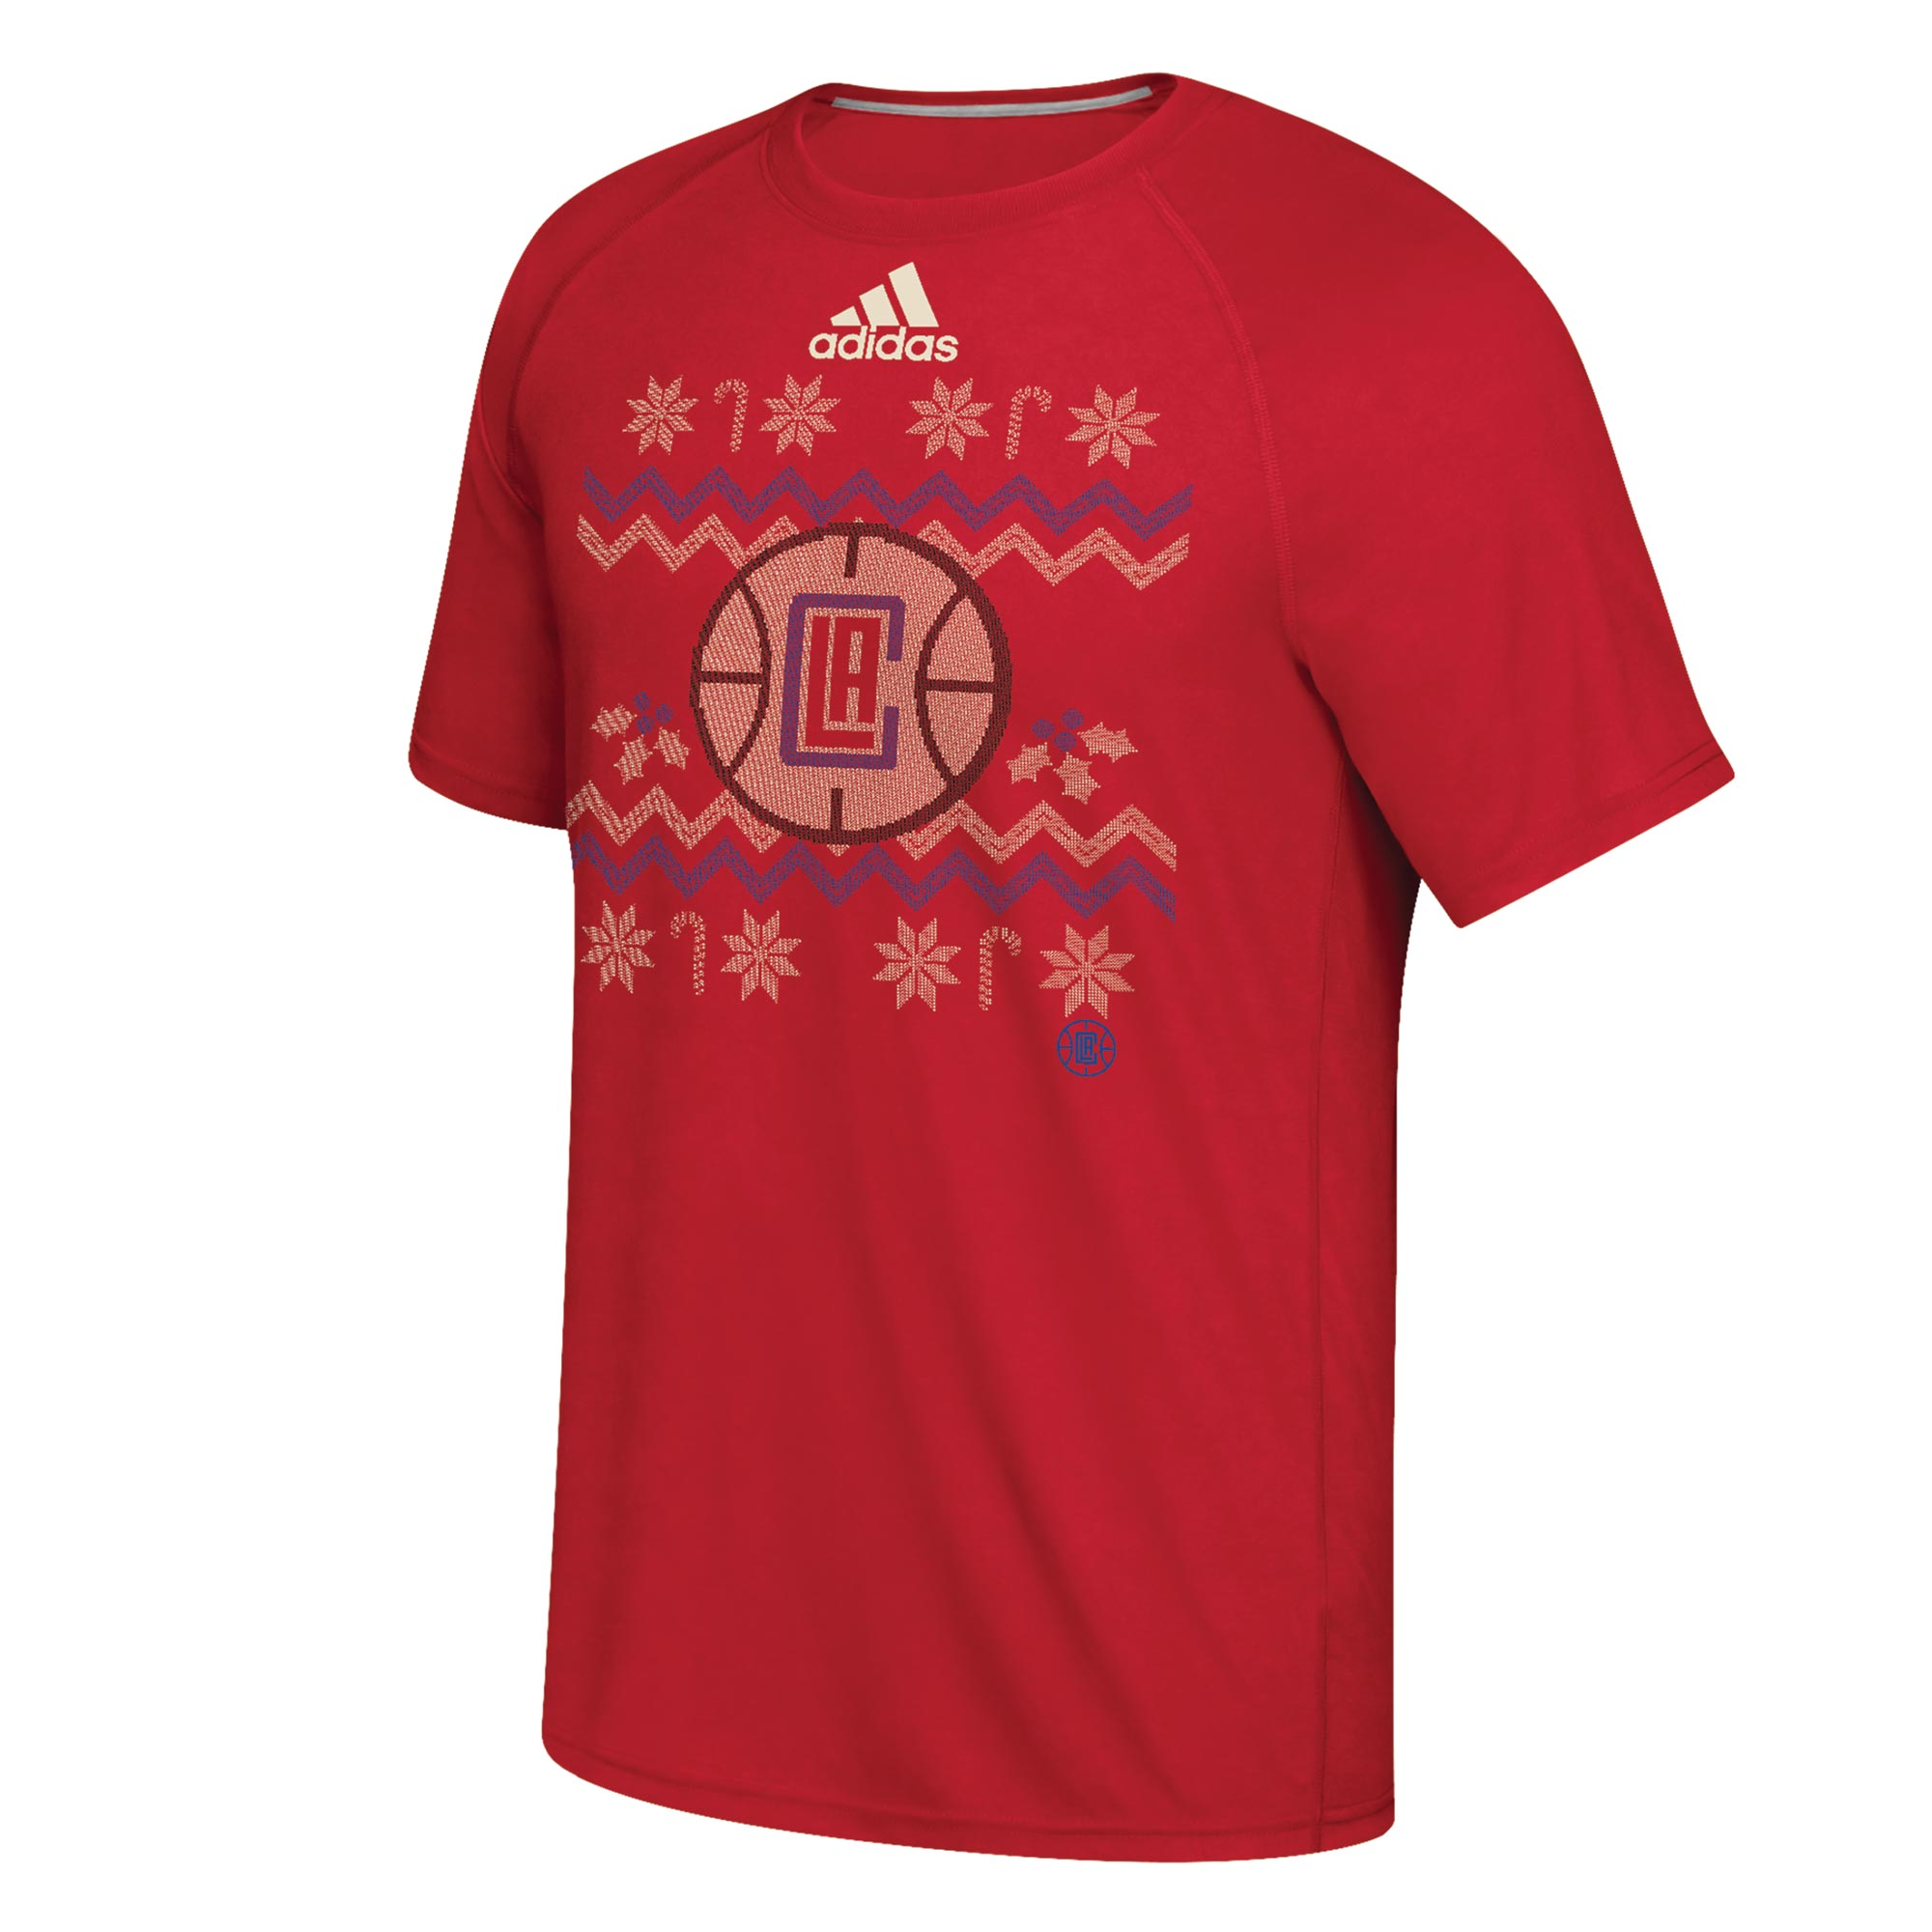 Image of LA Clippers Christmas Day Ugly Sweater On-Court T-Shirt 2016